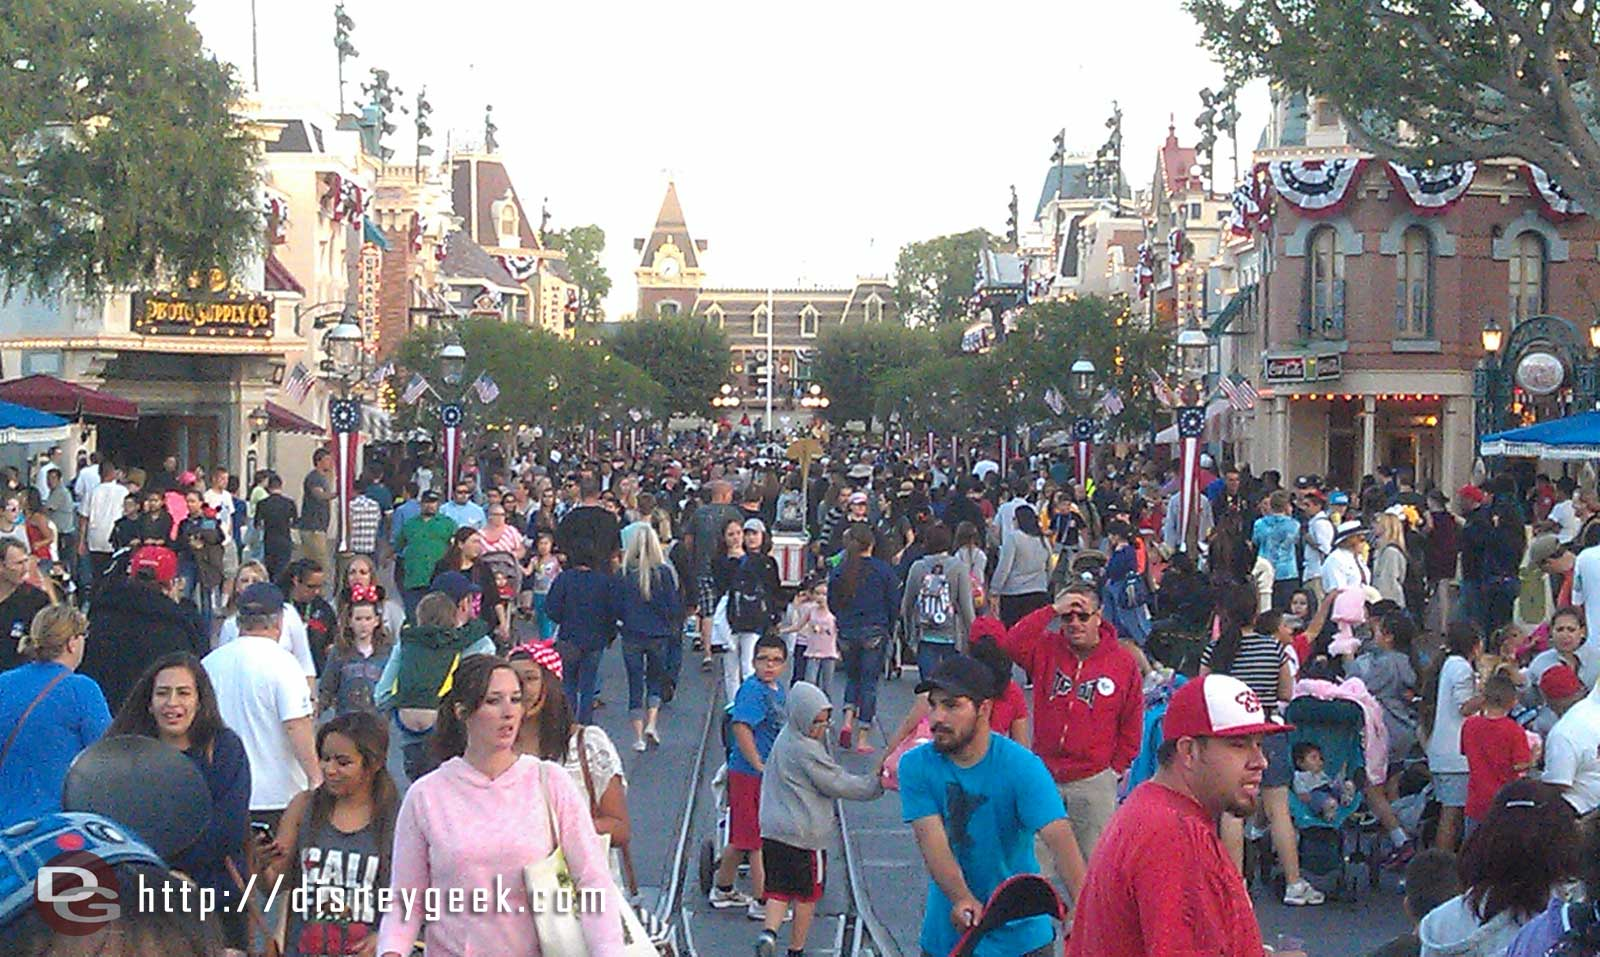 Looking toward Town Square